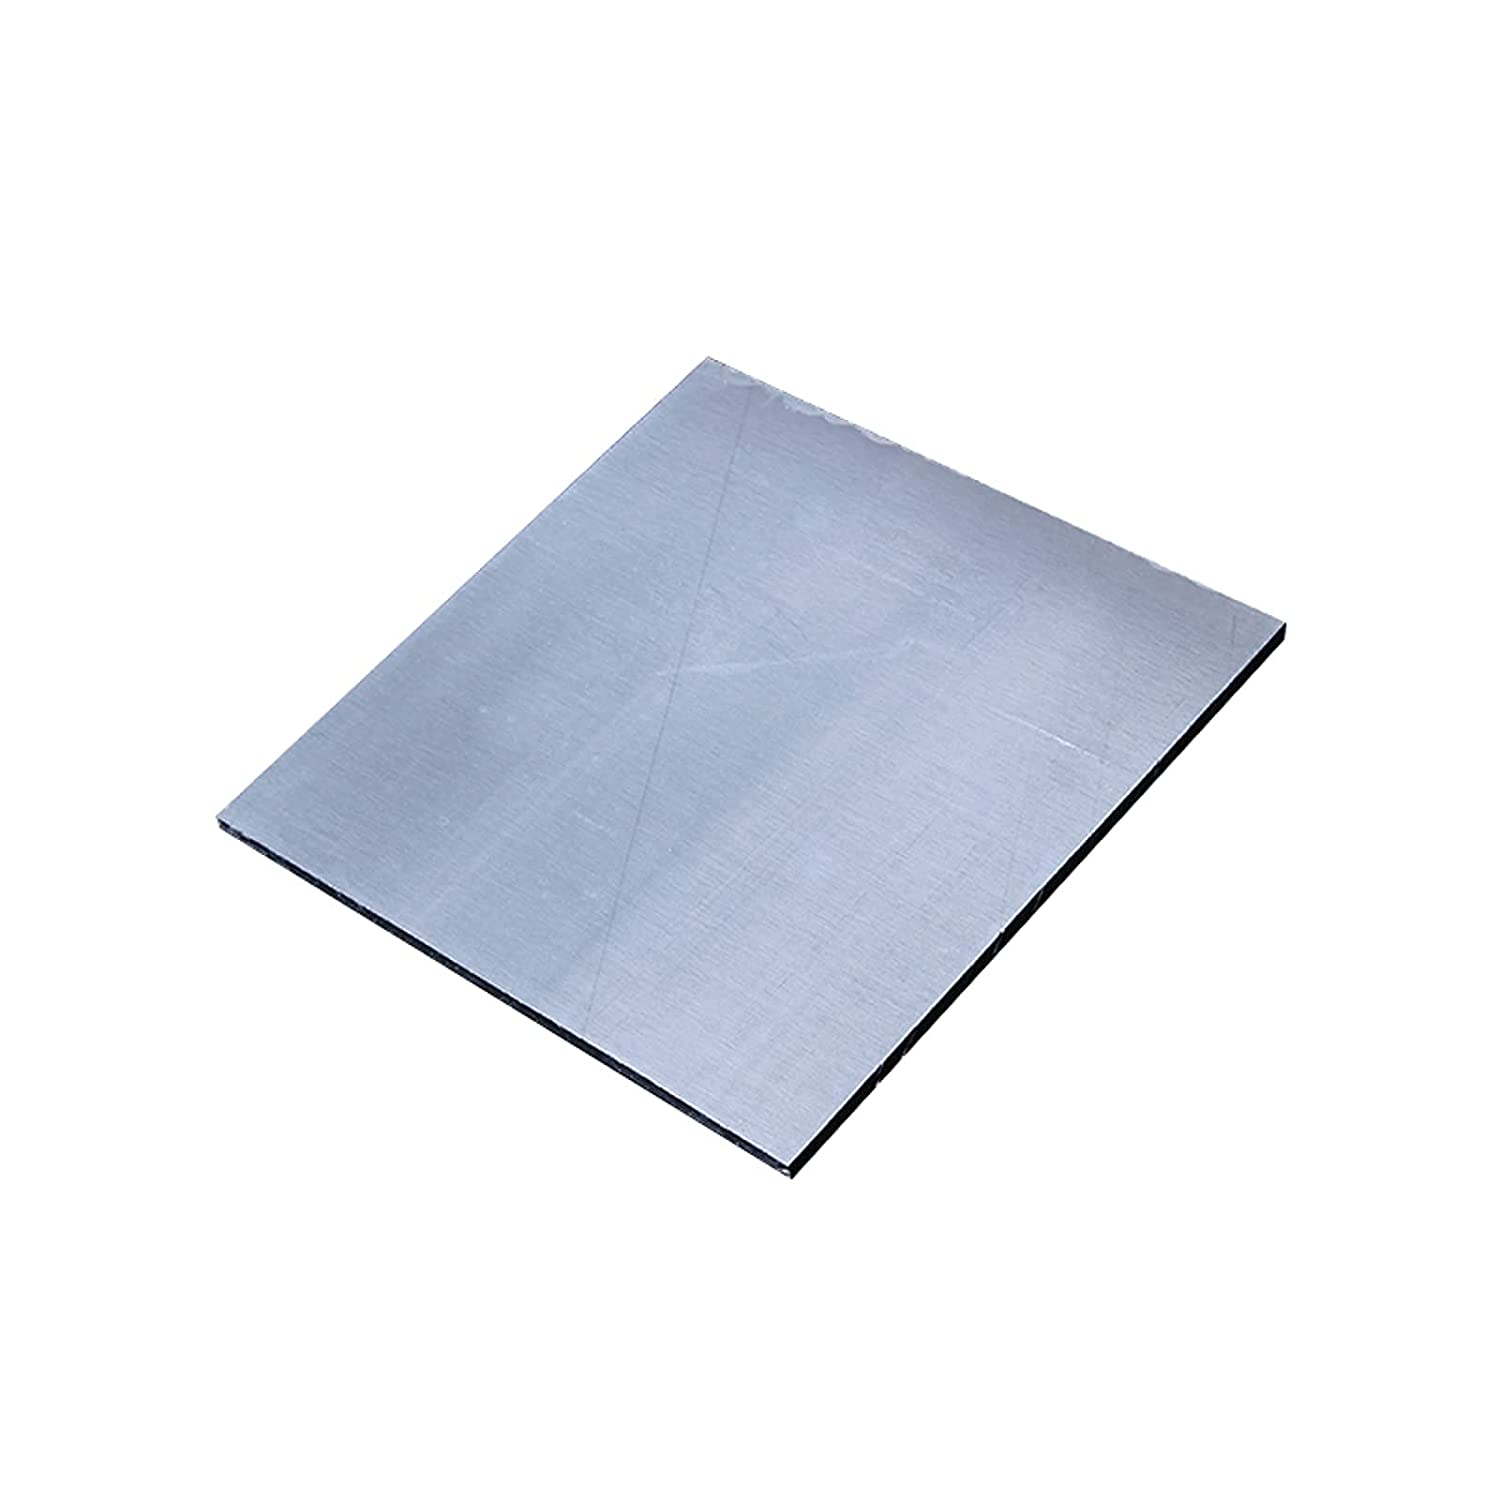 Bopaodao 6061 Aluminum Challenge the lowest price Plate Machinable Max 69% OFF Anti-Corrosion Weldable